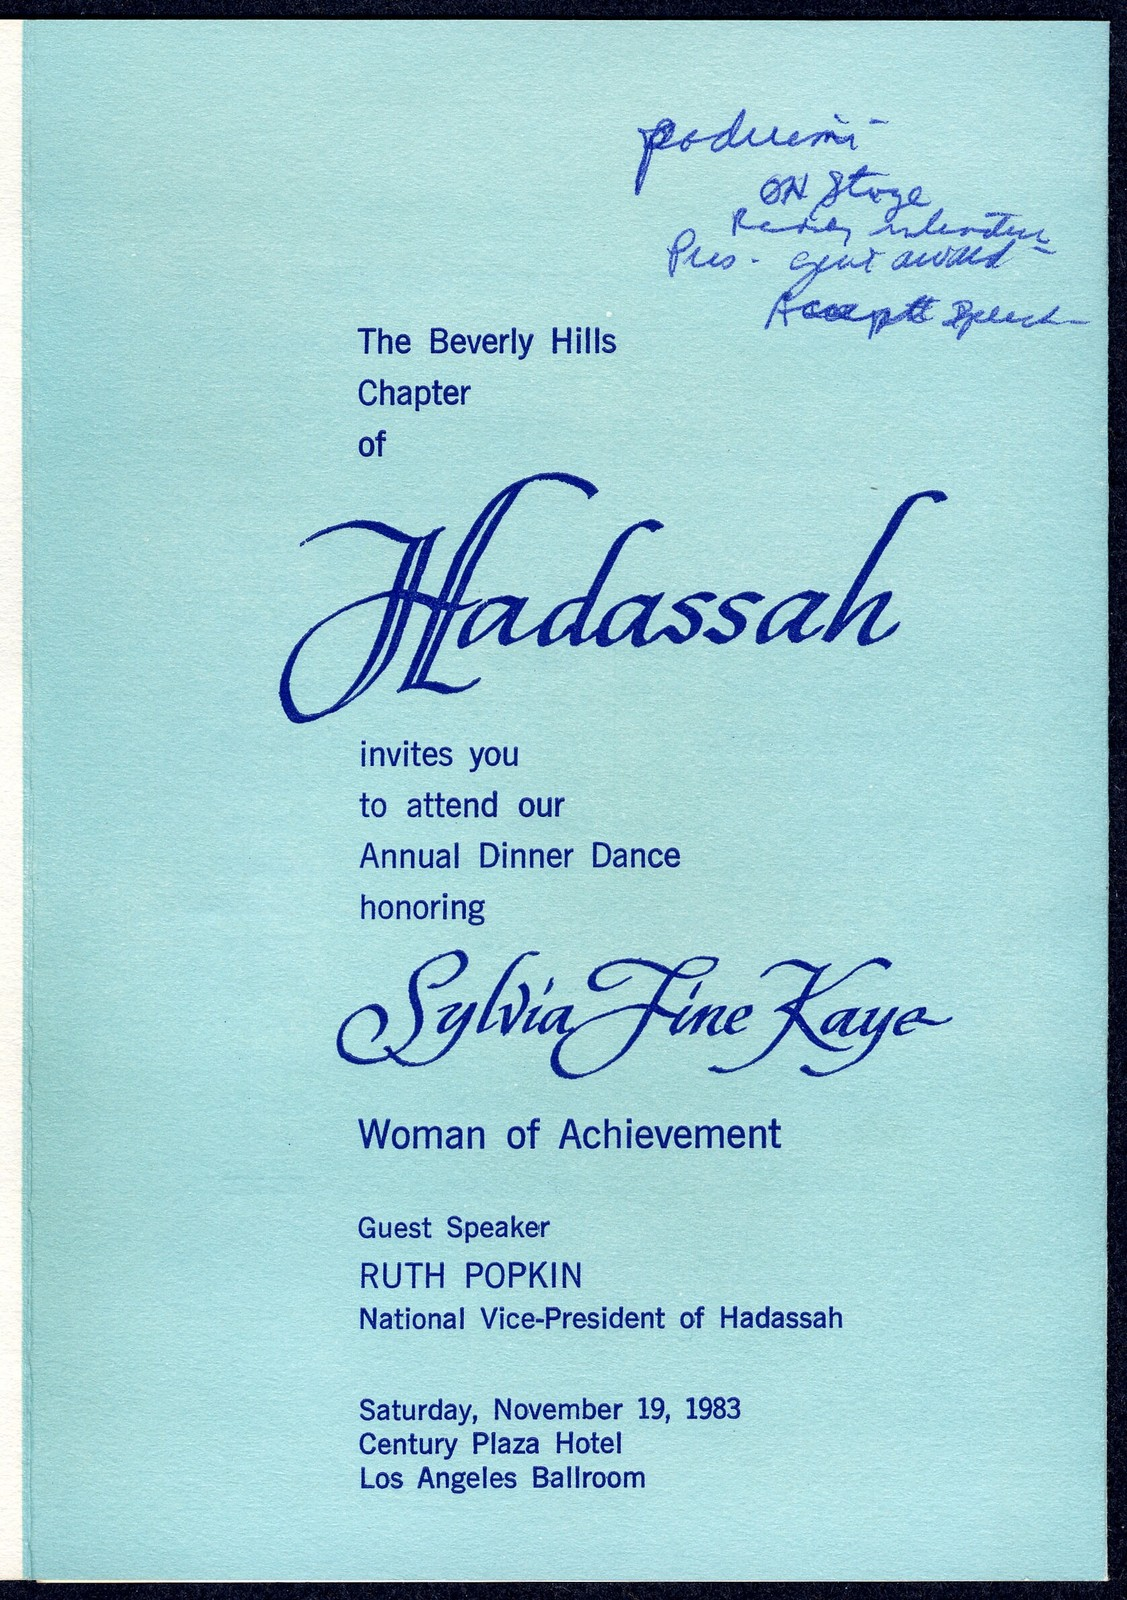 The  Beverly Hills Chapter of Hadassah invites you to attend our Annual Dinner Dance honoring Sylvia Fine Kaye, Woman of Achievement